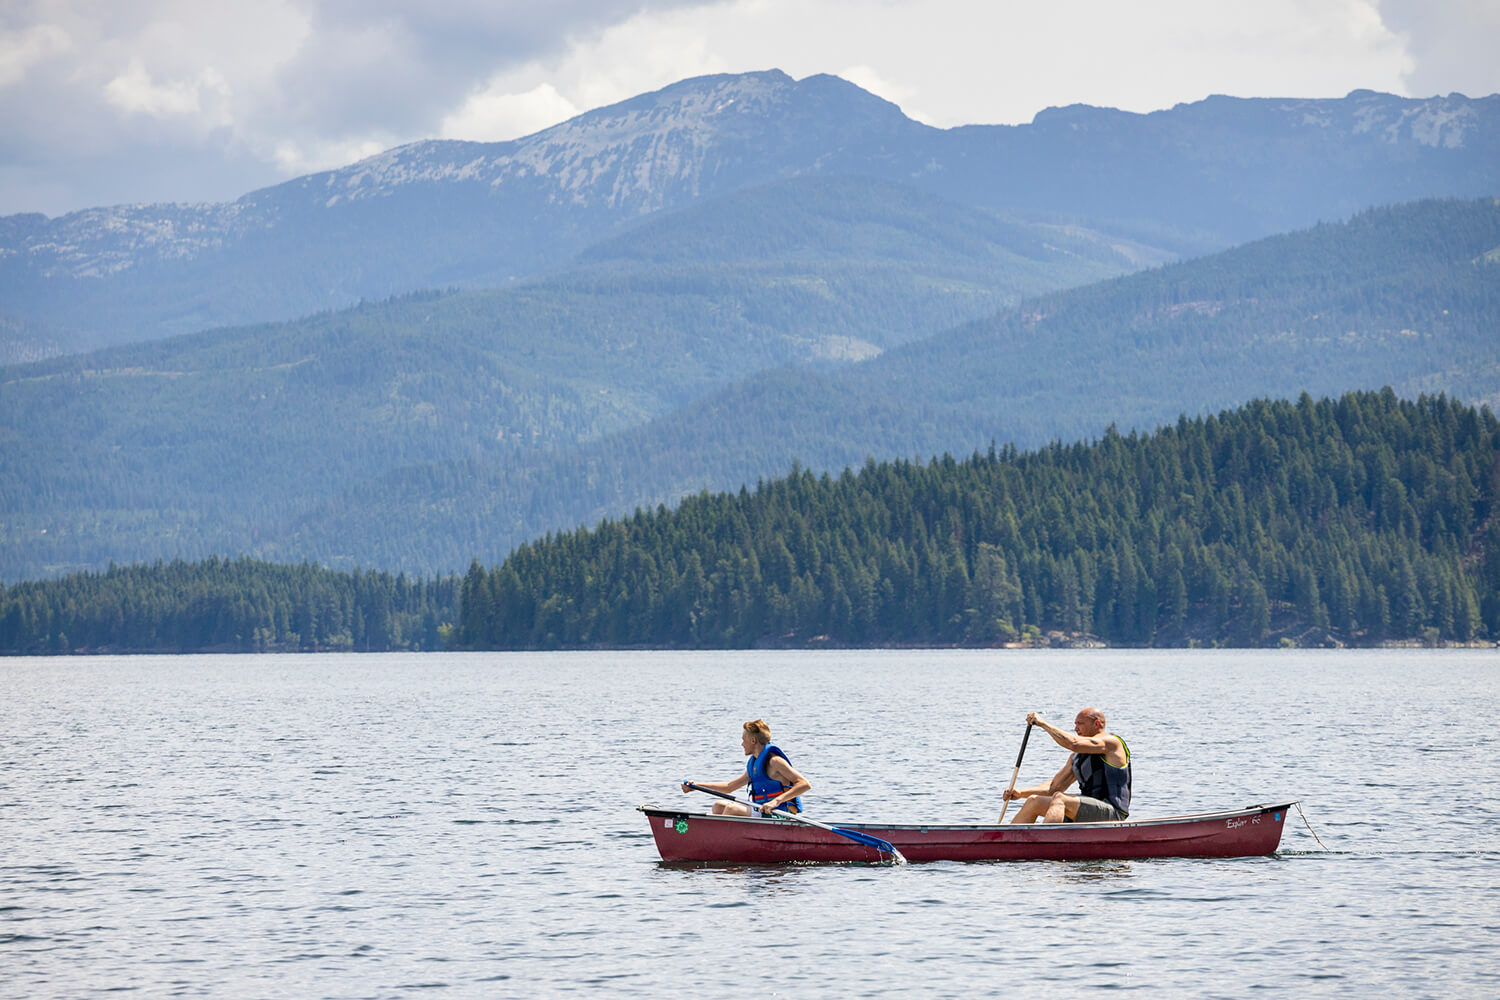 two people paddling a canoe on Priest Lake with tree covered mountains in the background